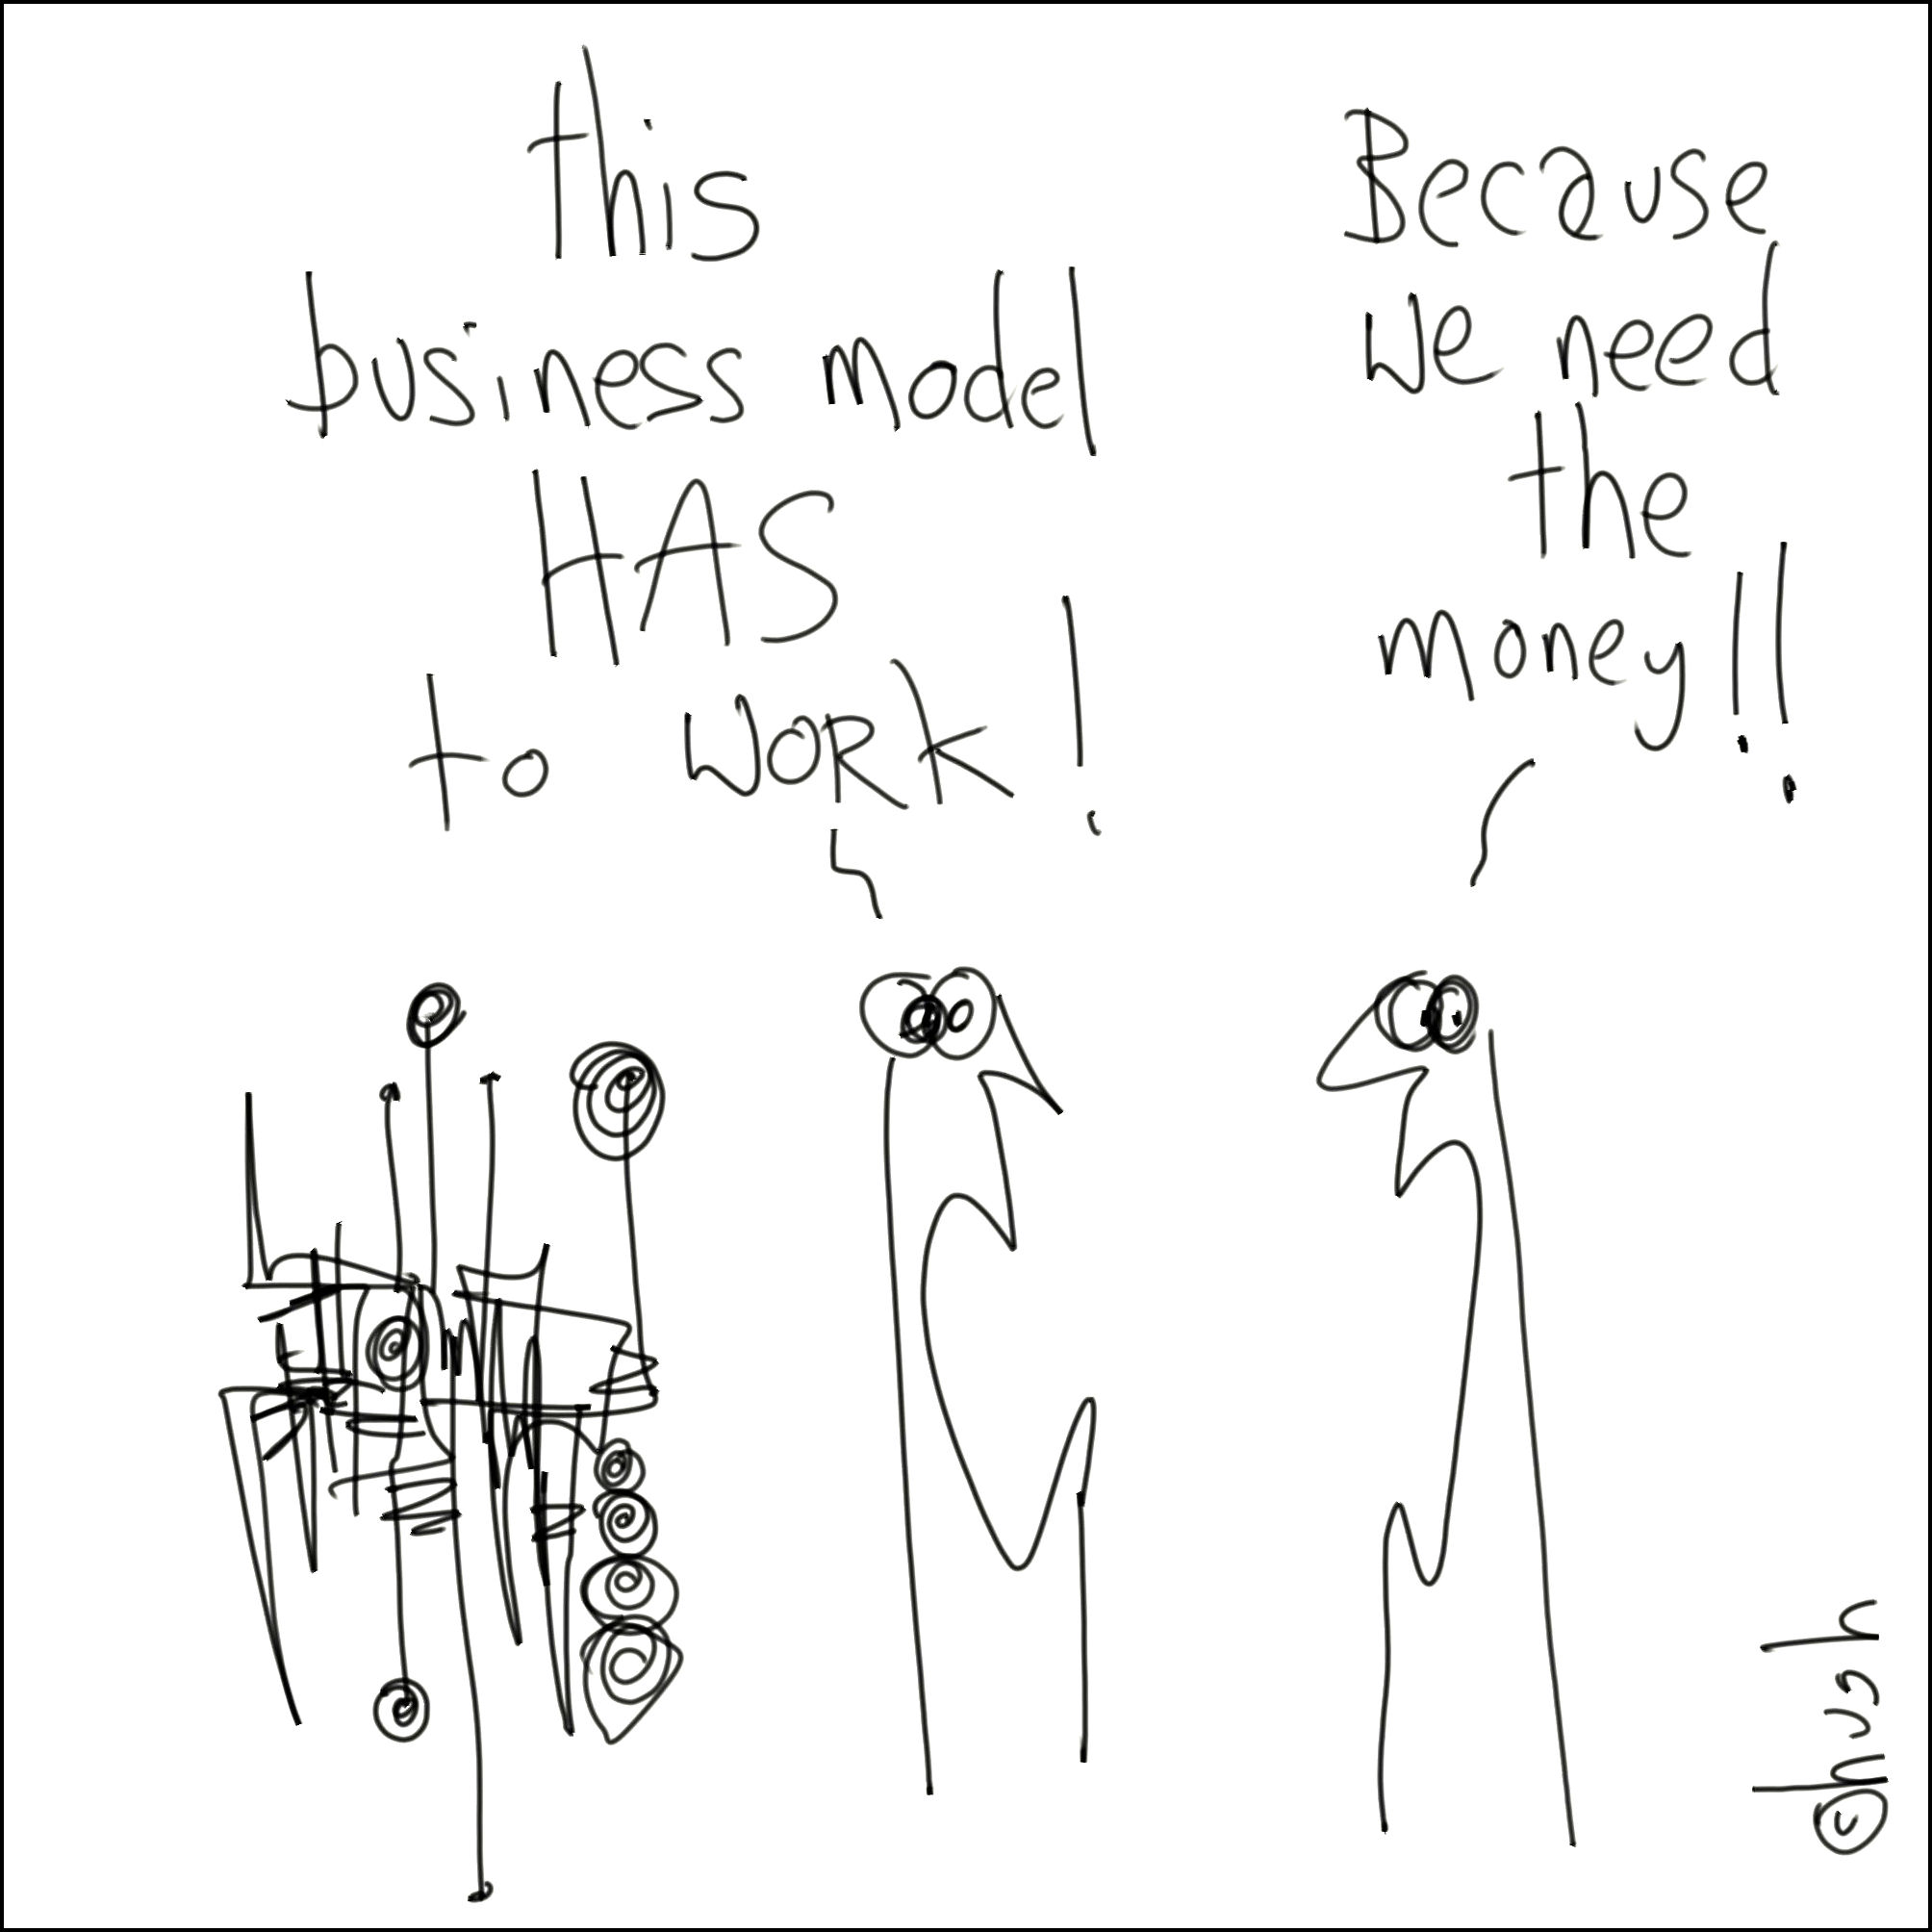 Courtesy of gapingvoid